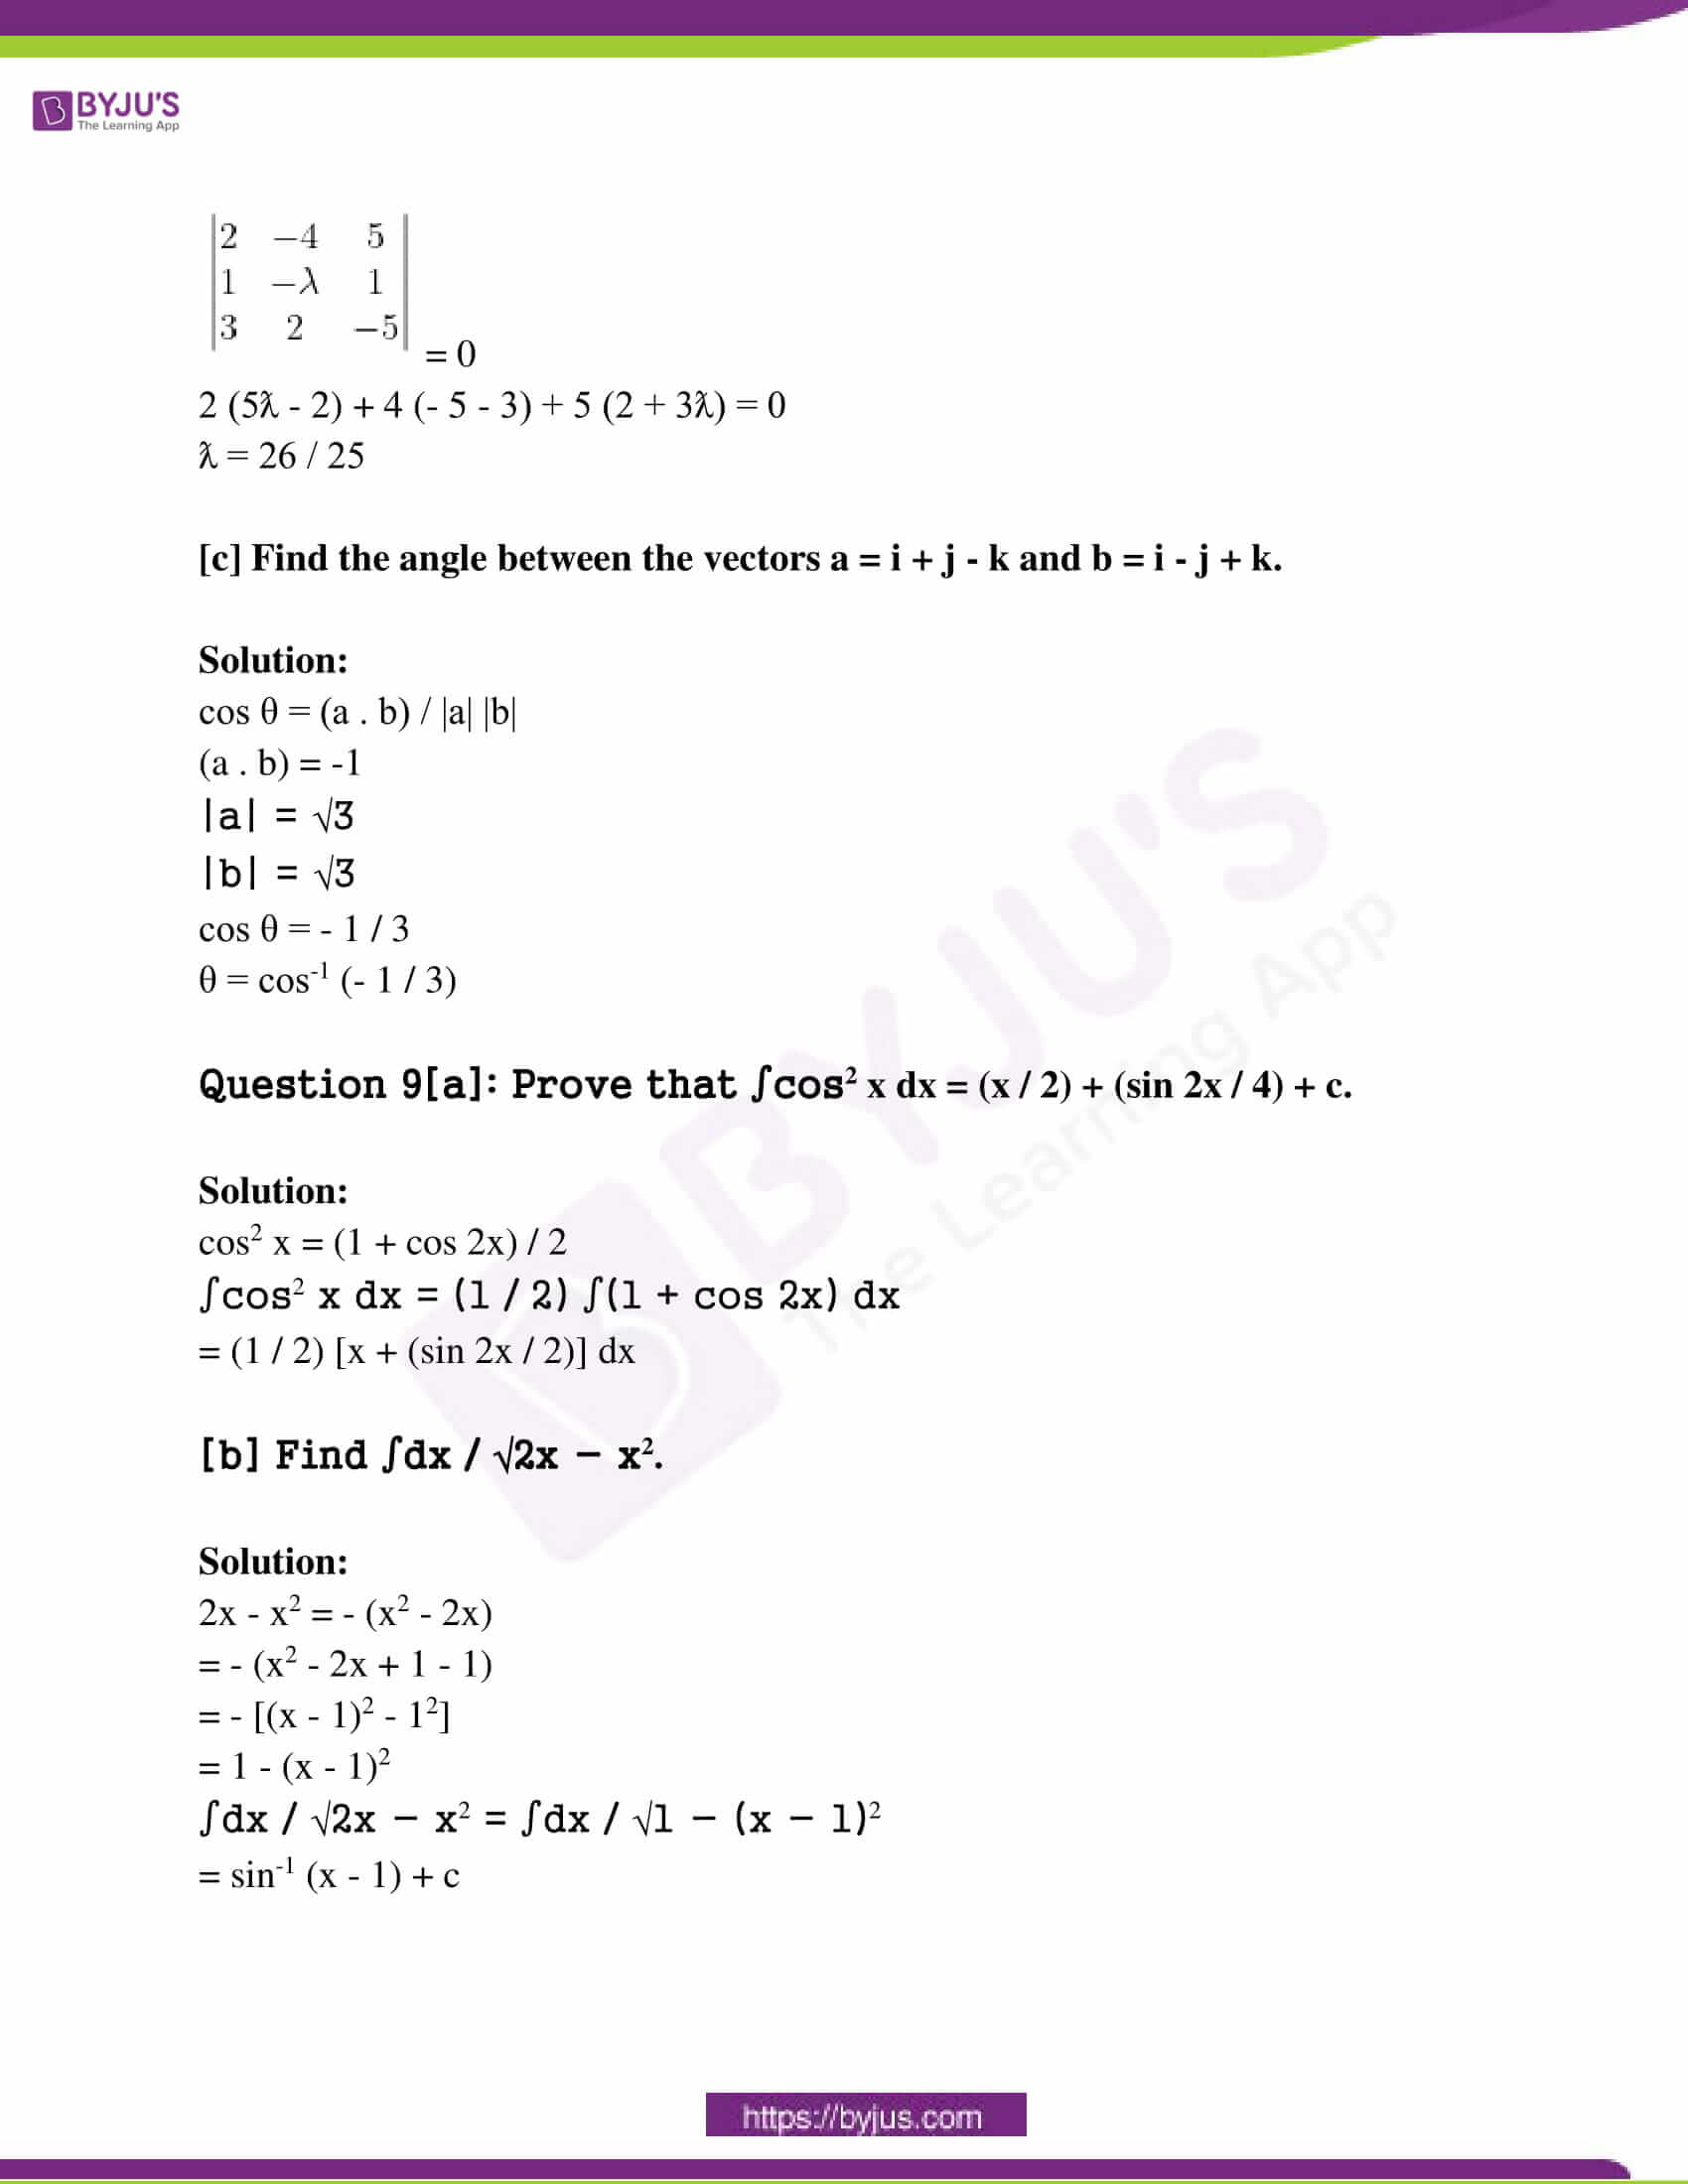 kerala class 12 examination question paper solutions march 2016 09